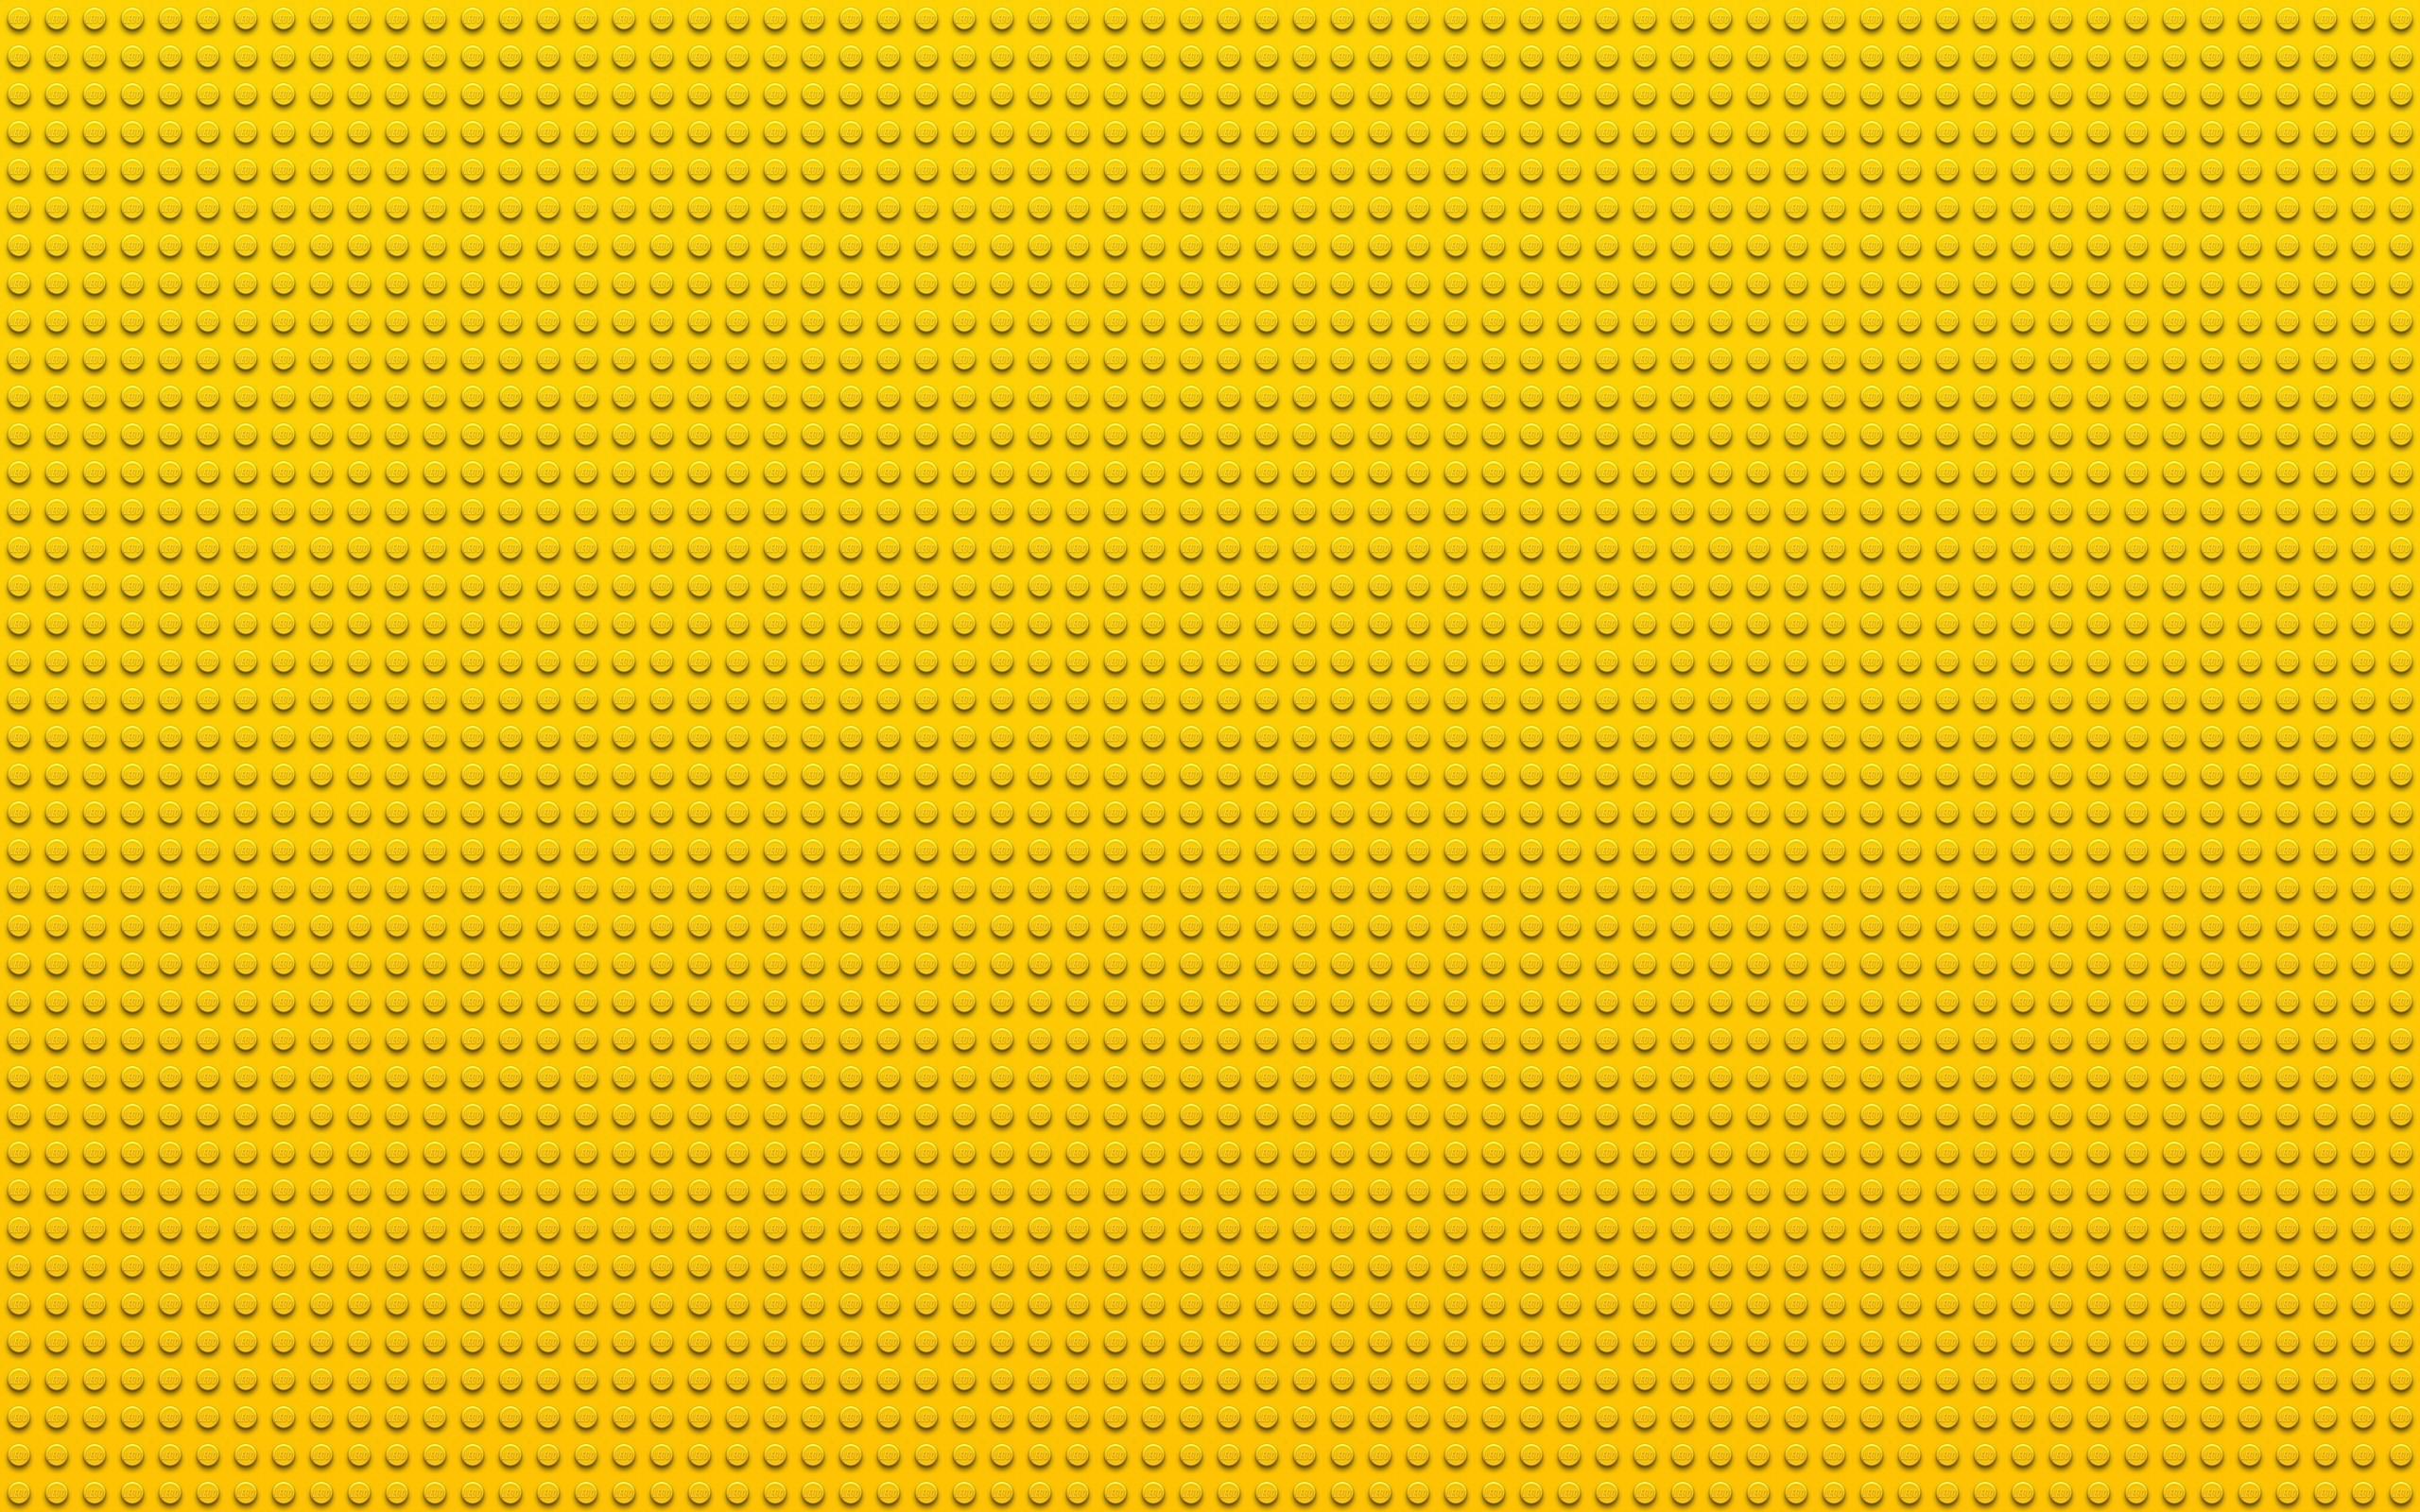 2560x1600  Wallpaper lego, points, circles, yellow